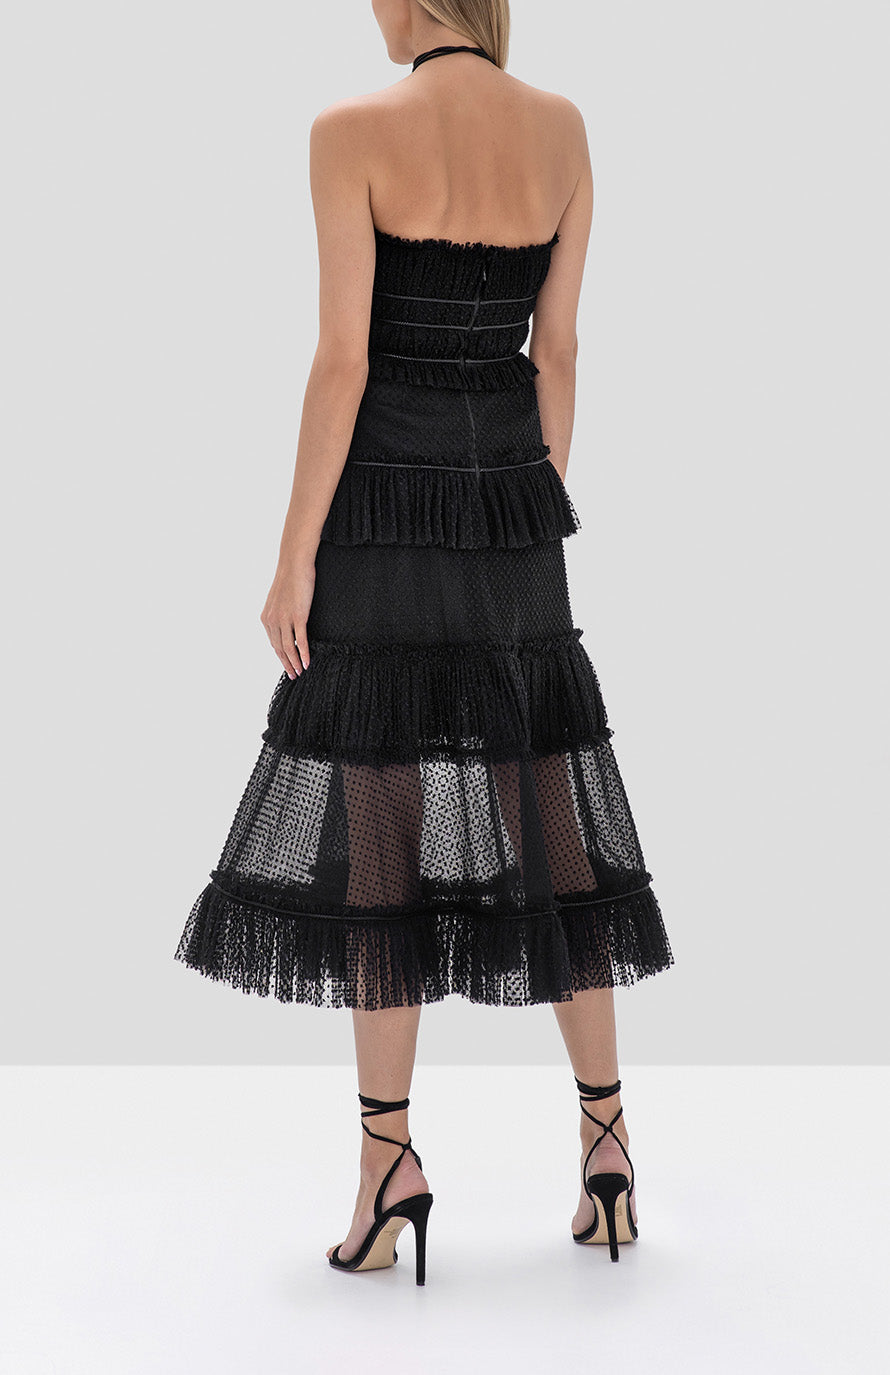 Alexis Angelia Dress in Black from the Fall Winter 2019 Ready To Wear Collection - Rear View